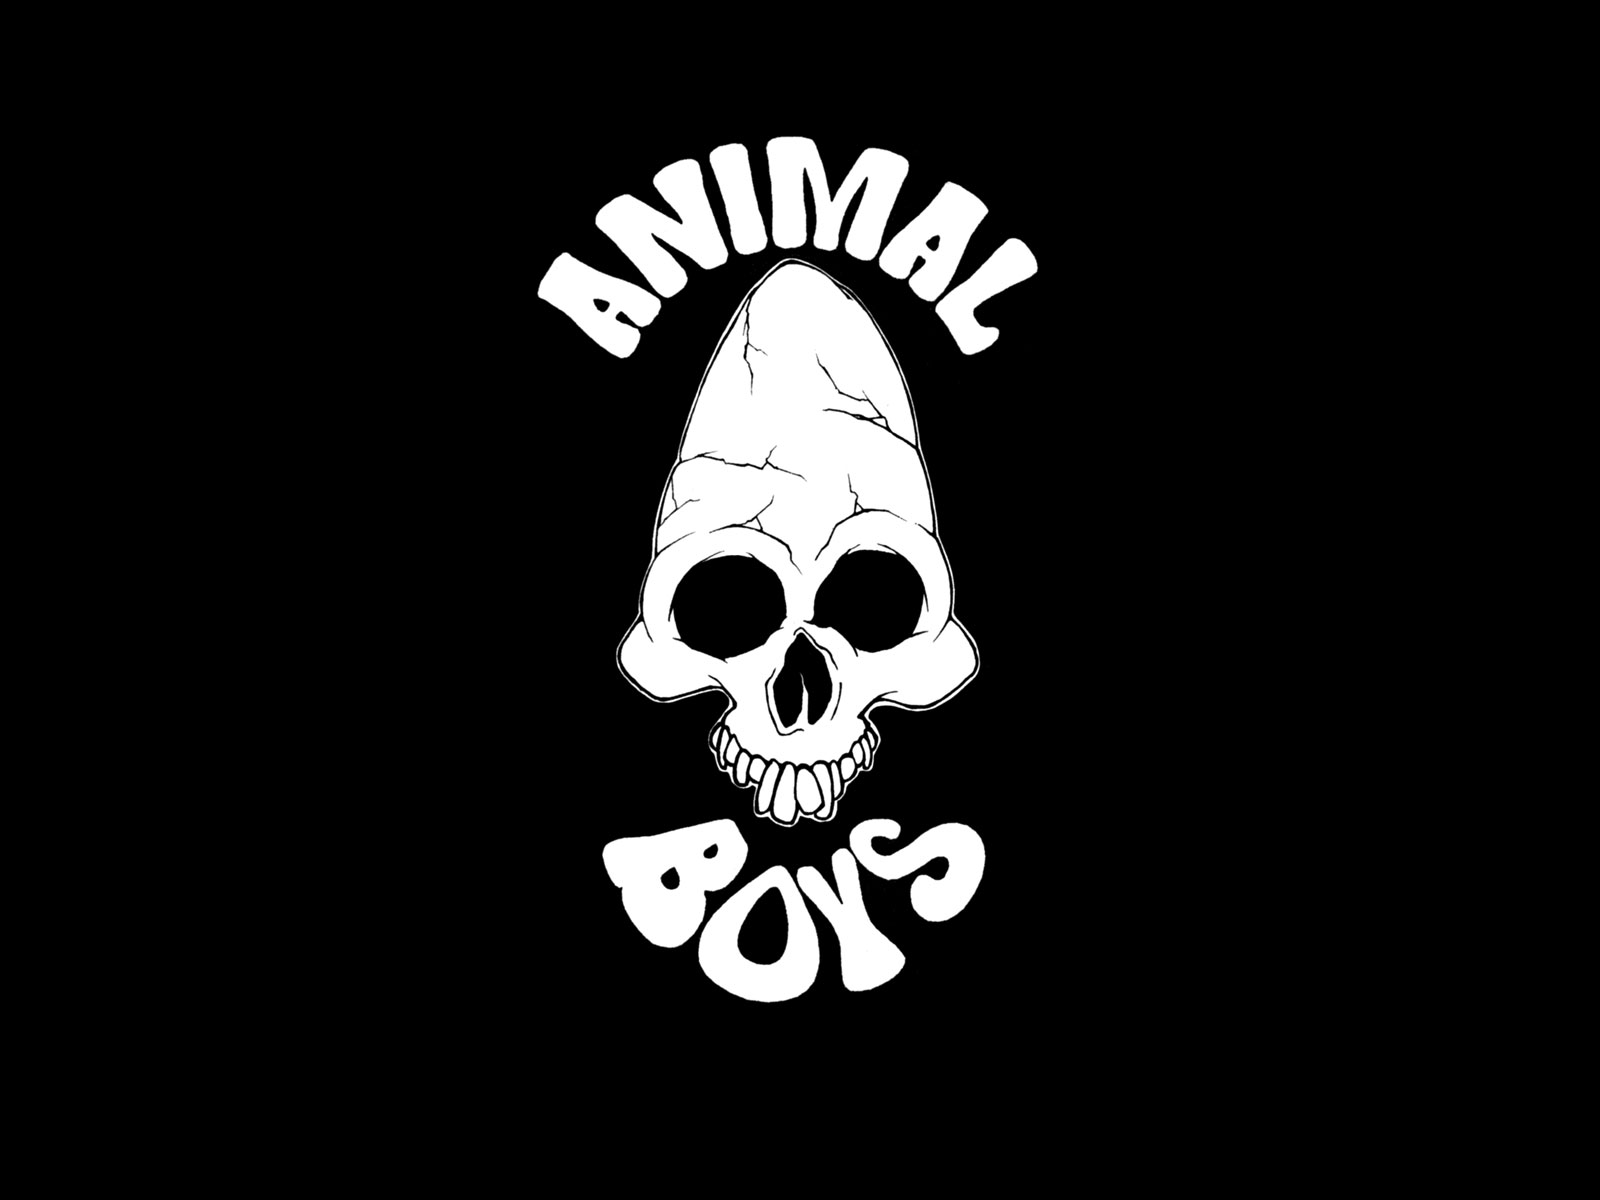 Gregg Barton Wallpapers Animal Boys PC Stuff Wallpaper Ramones Screensaver